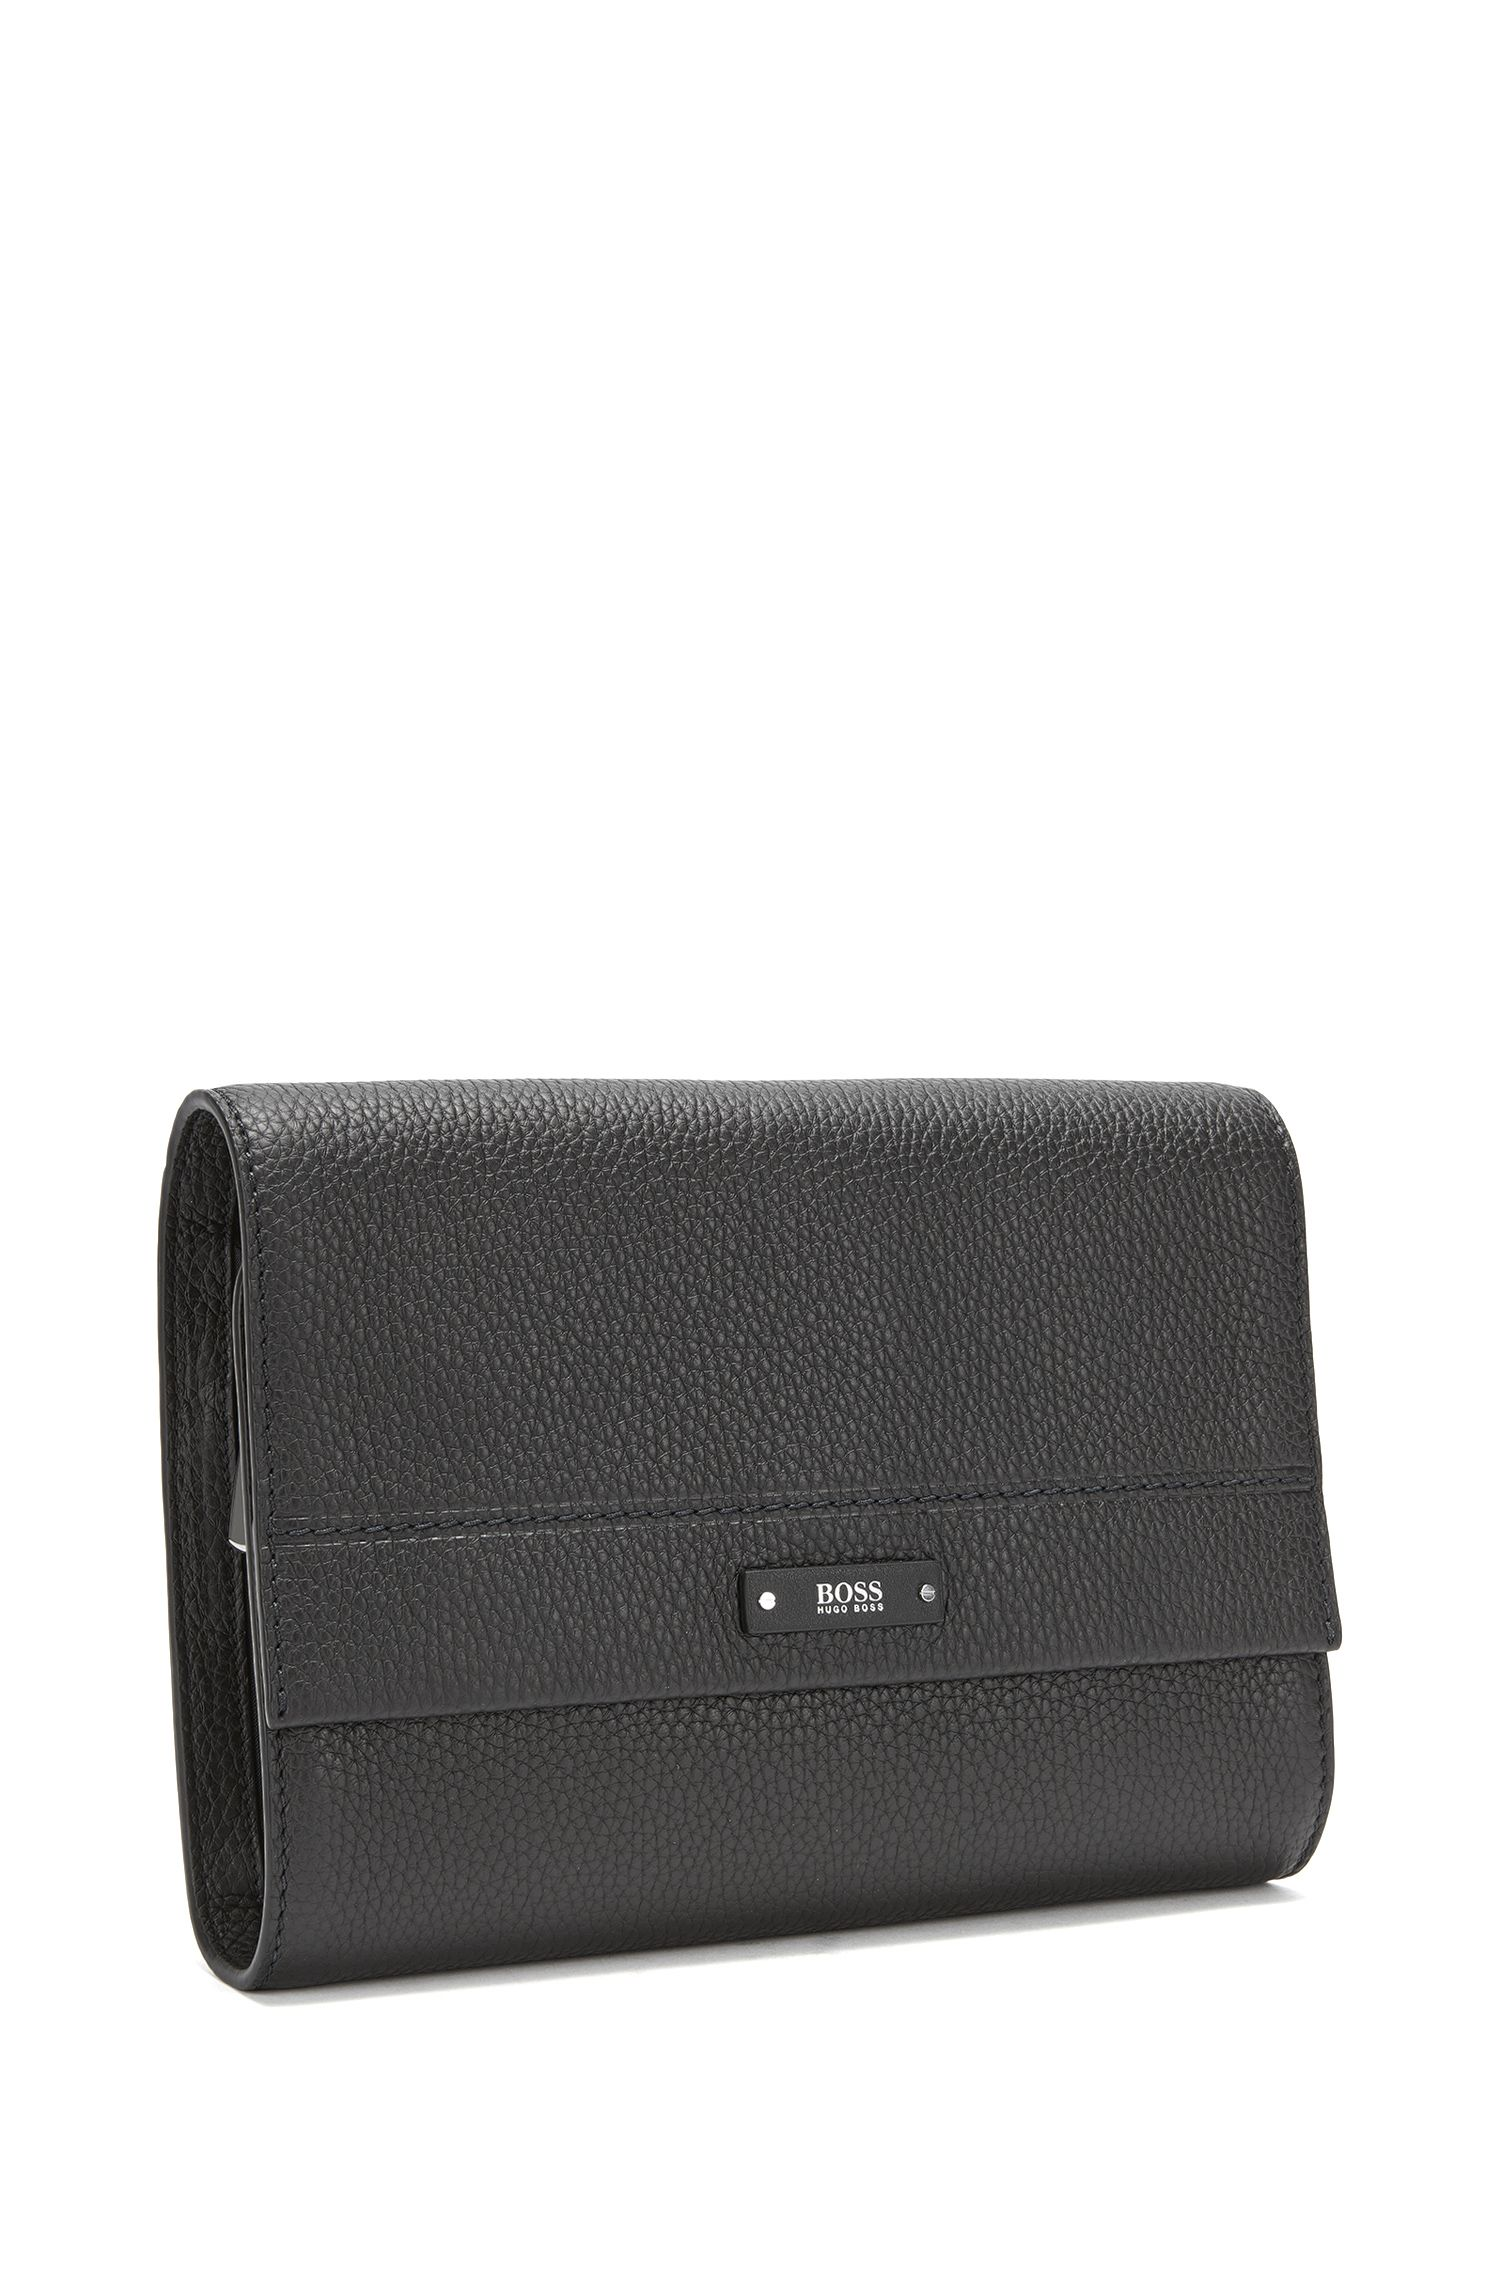 Leather Washbag | Traveller Washb, Black